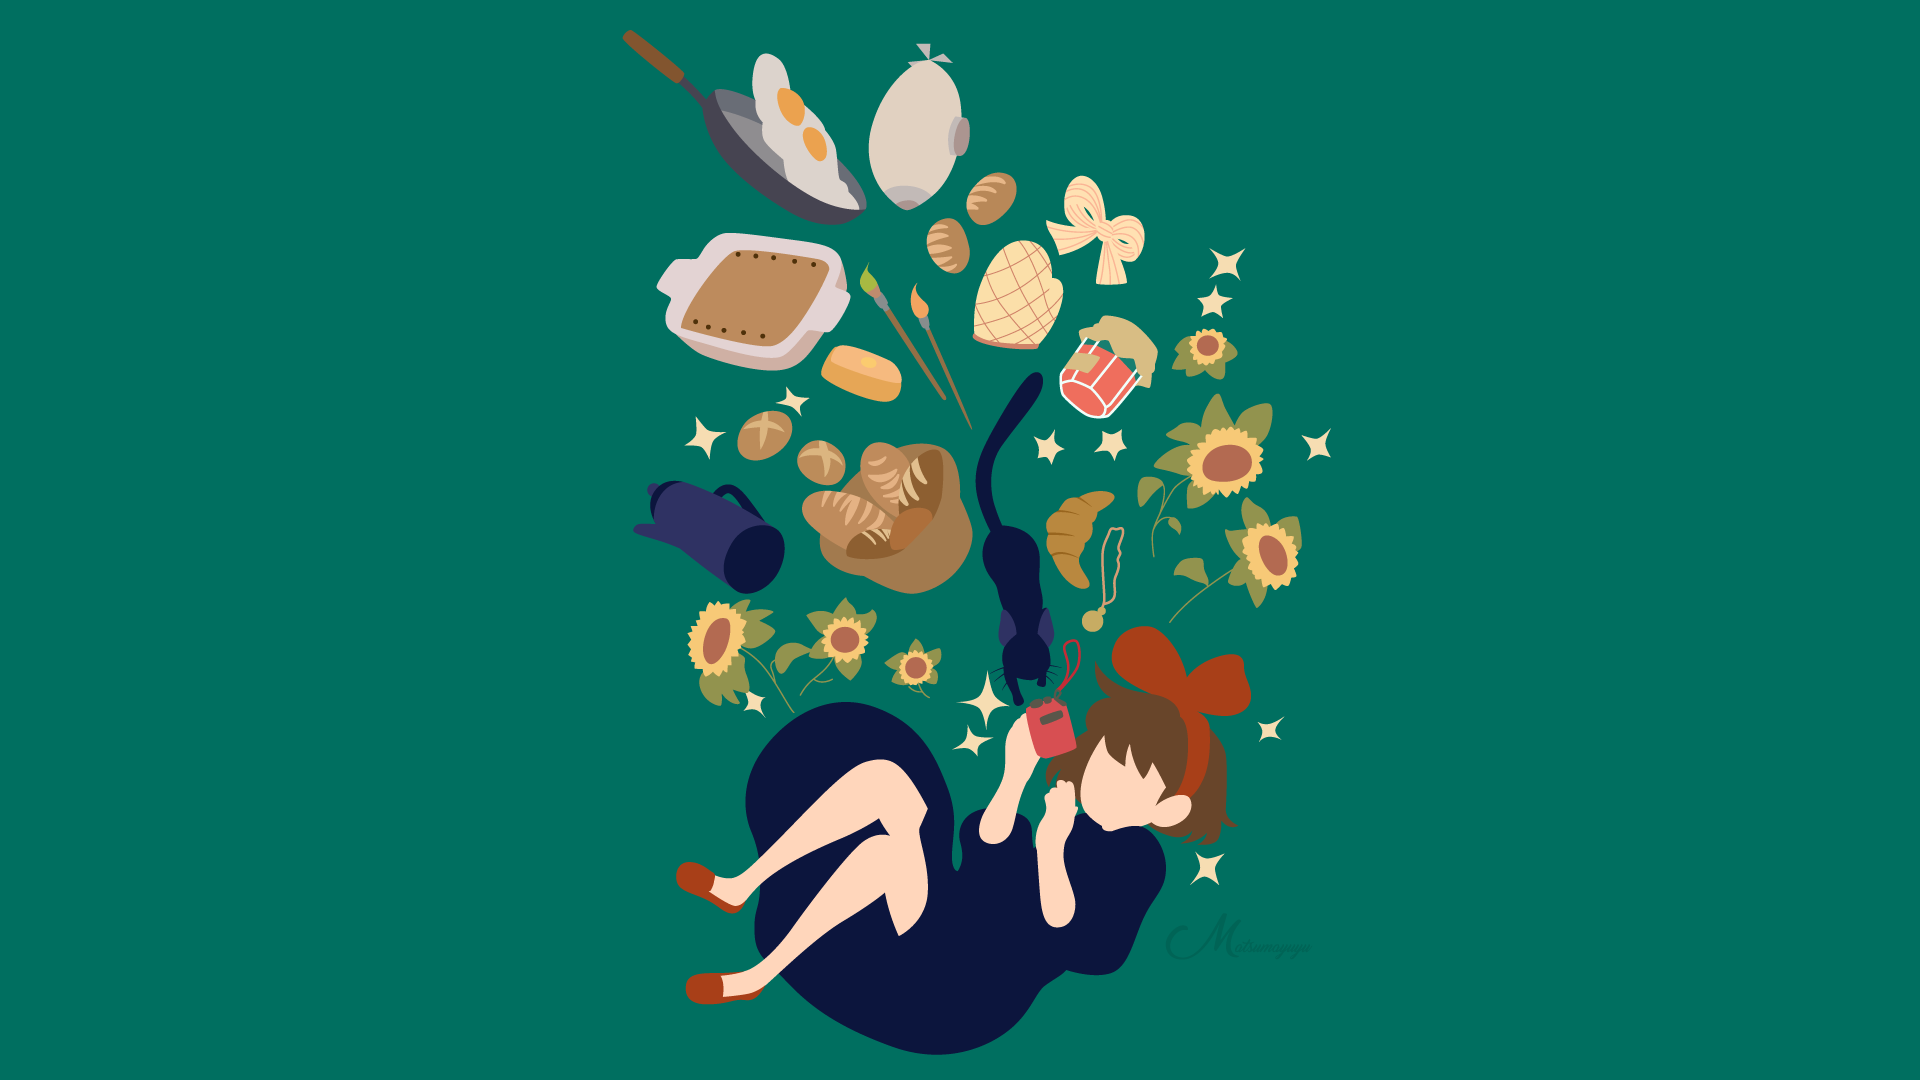 Kiki S Delivery Service Hd Wallpaper Background Image